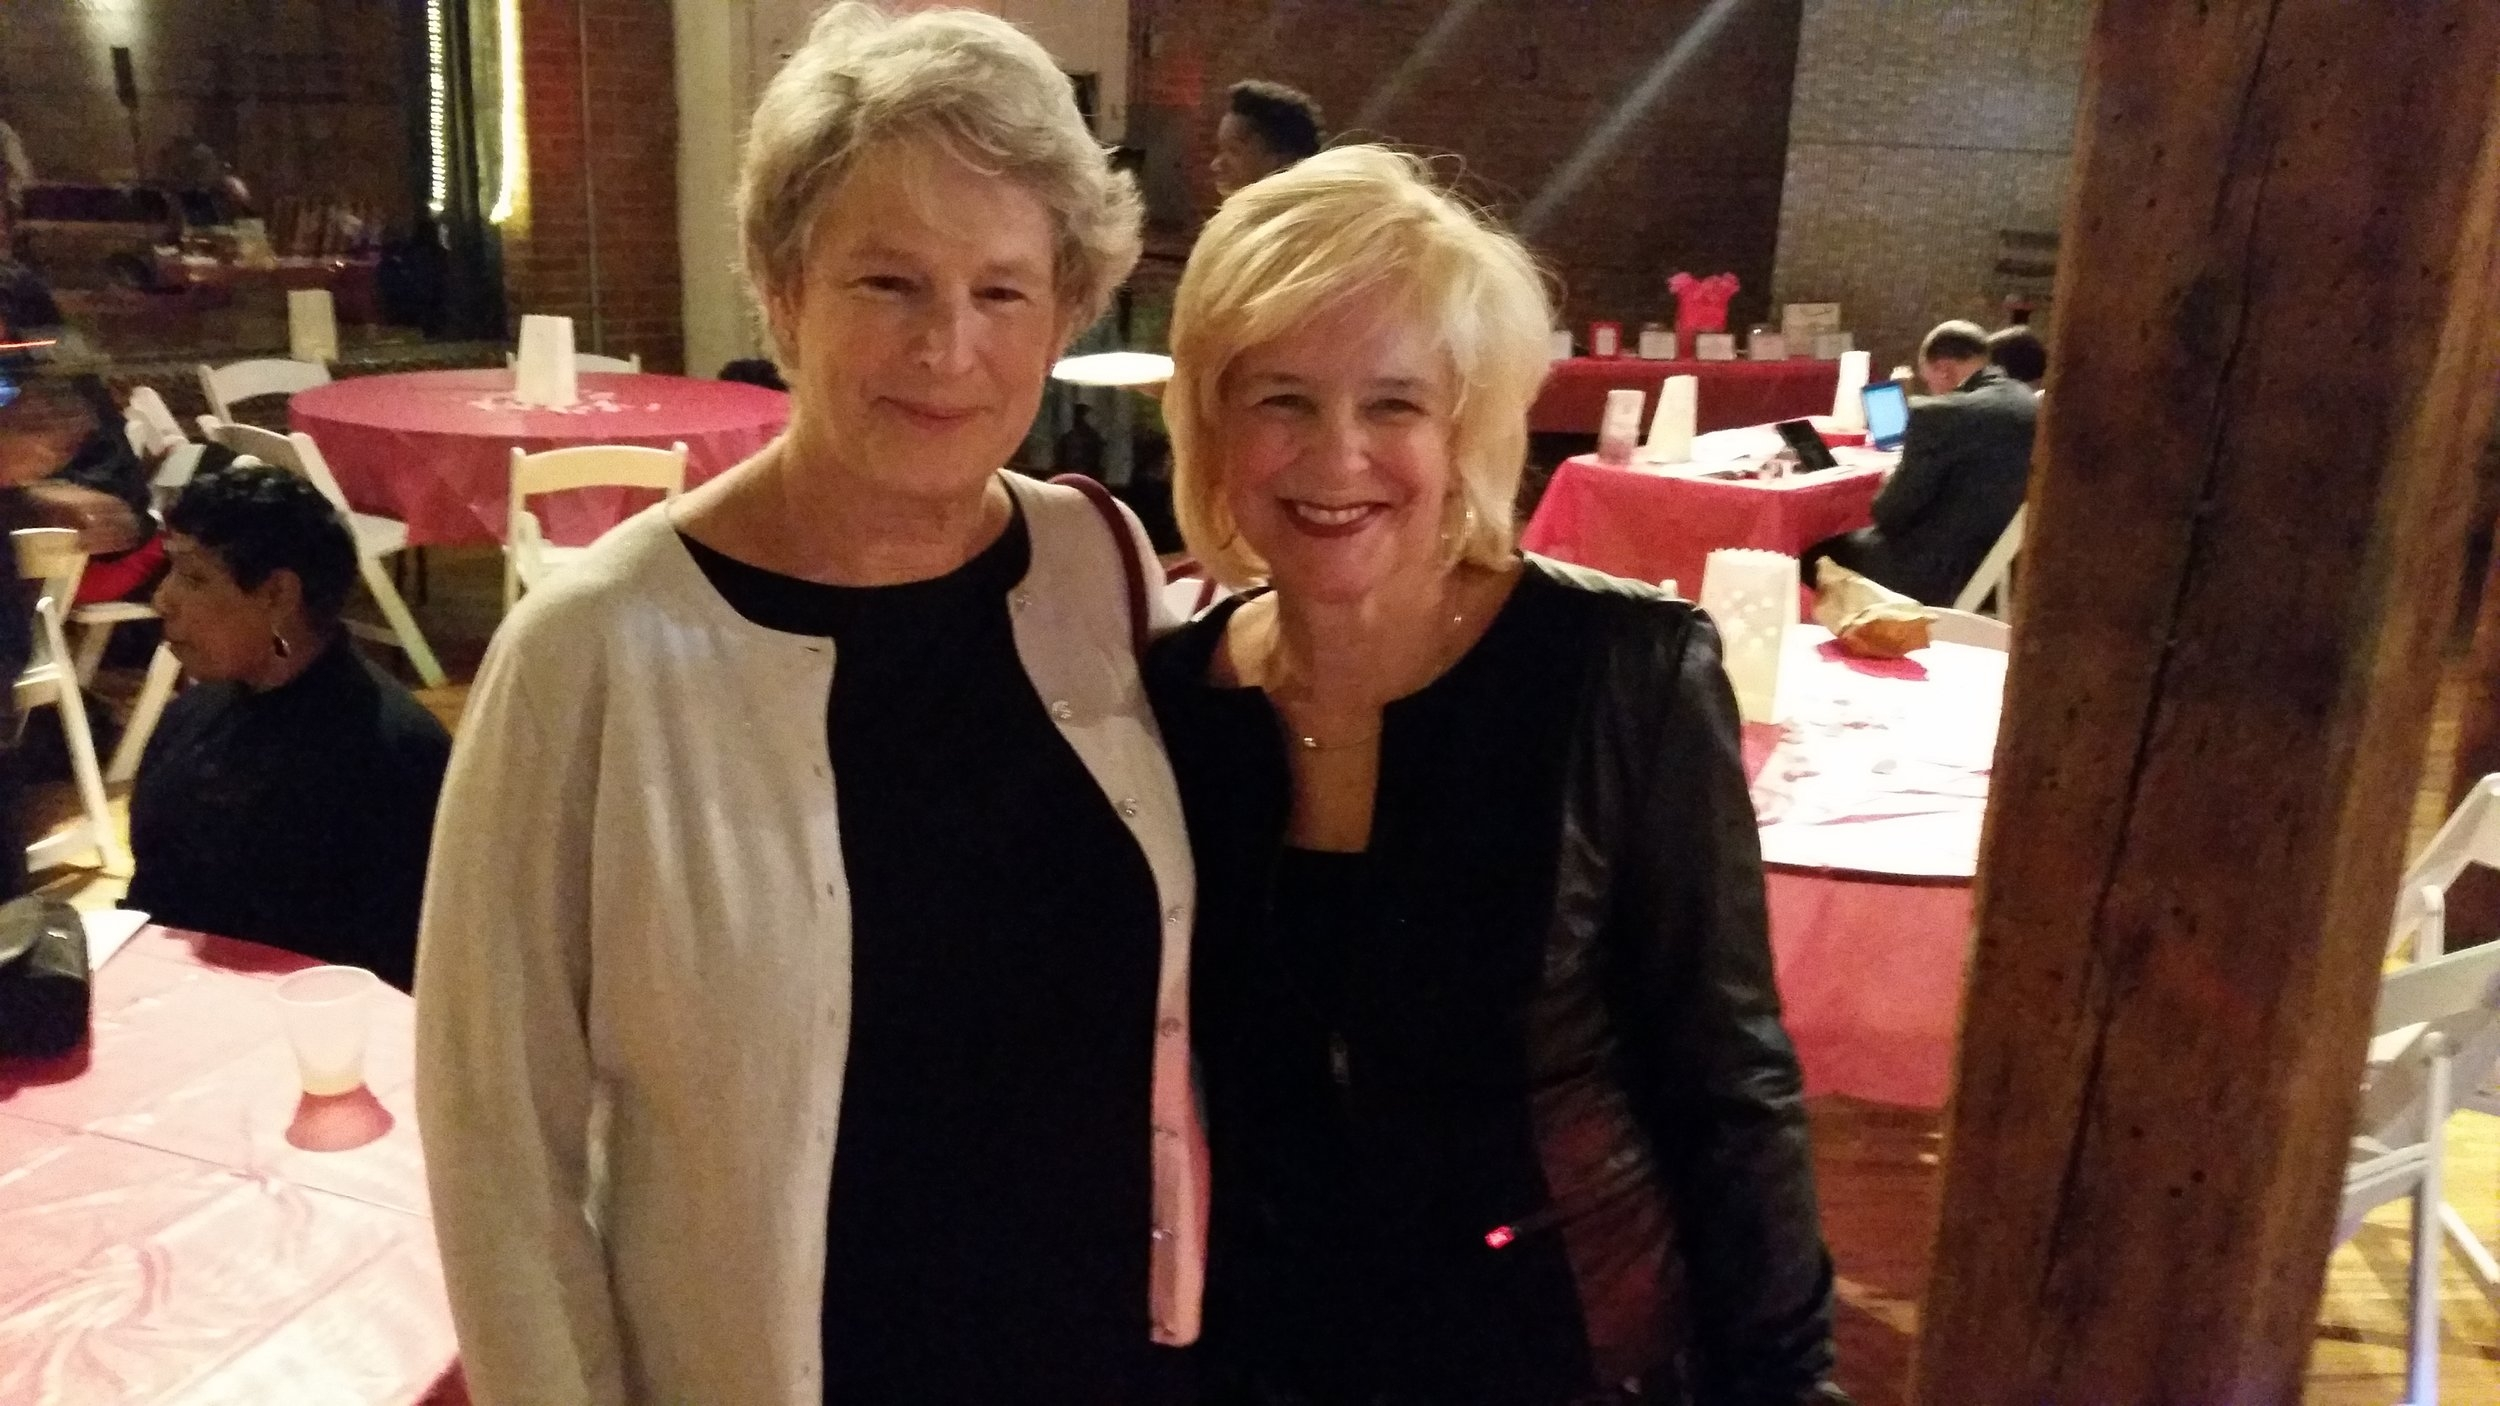 Past Presidents Dona Metcalf Laughlin and Marcia Smith